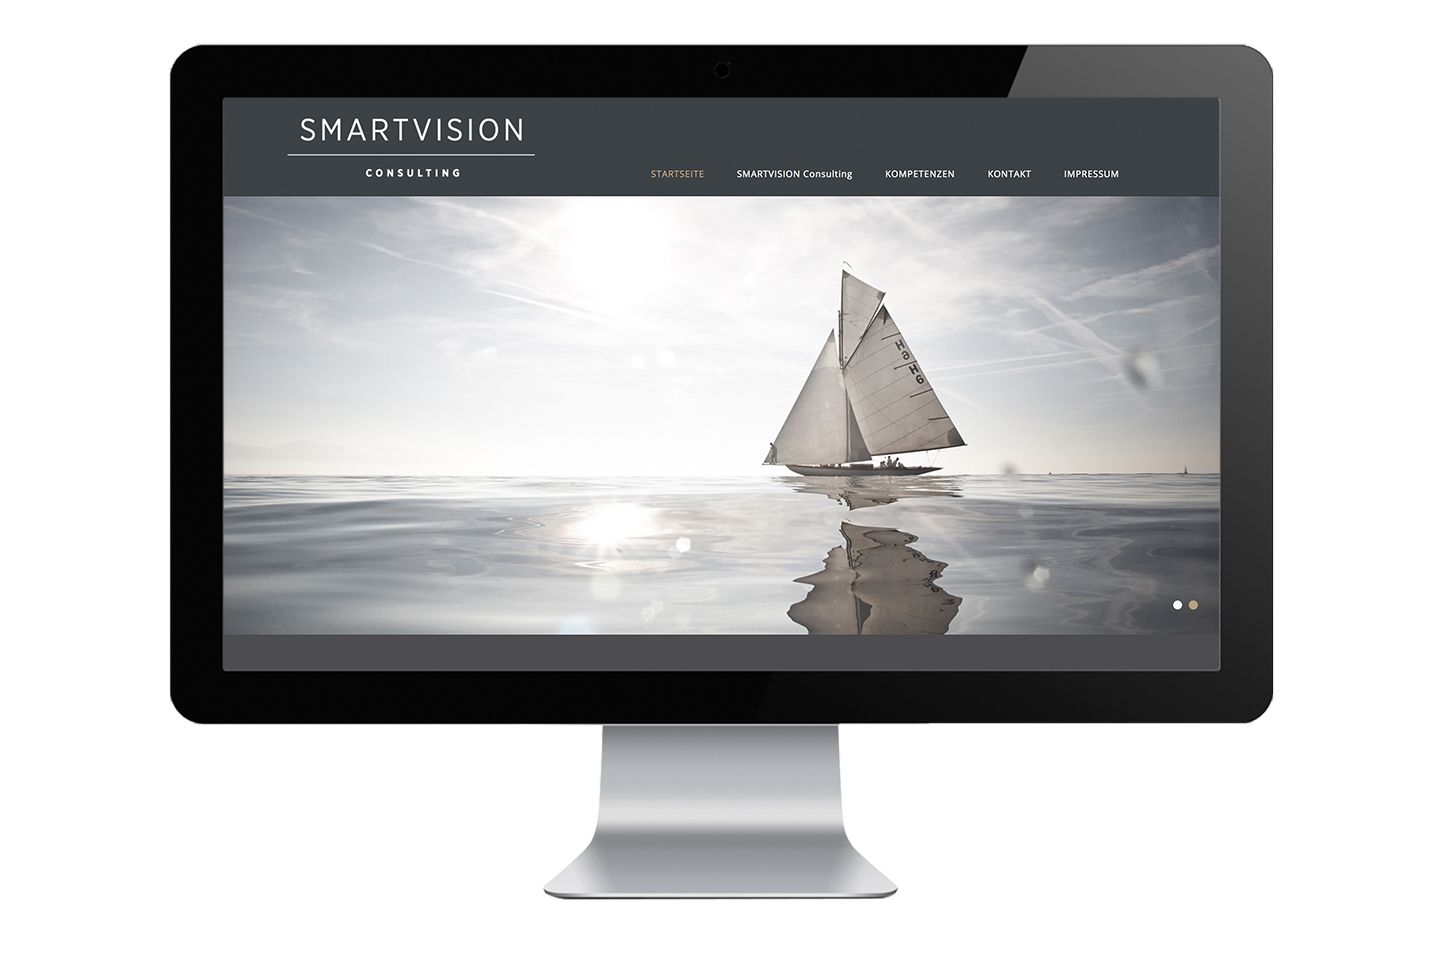 Smartvision Consulting